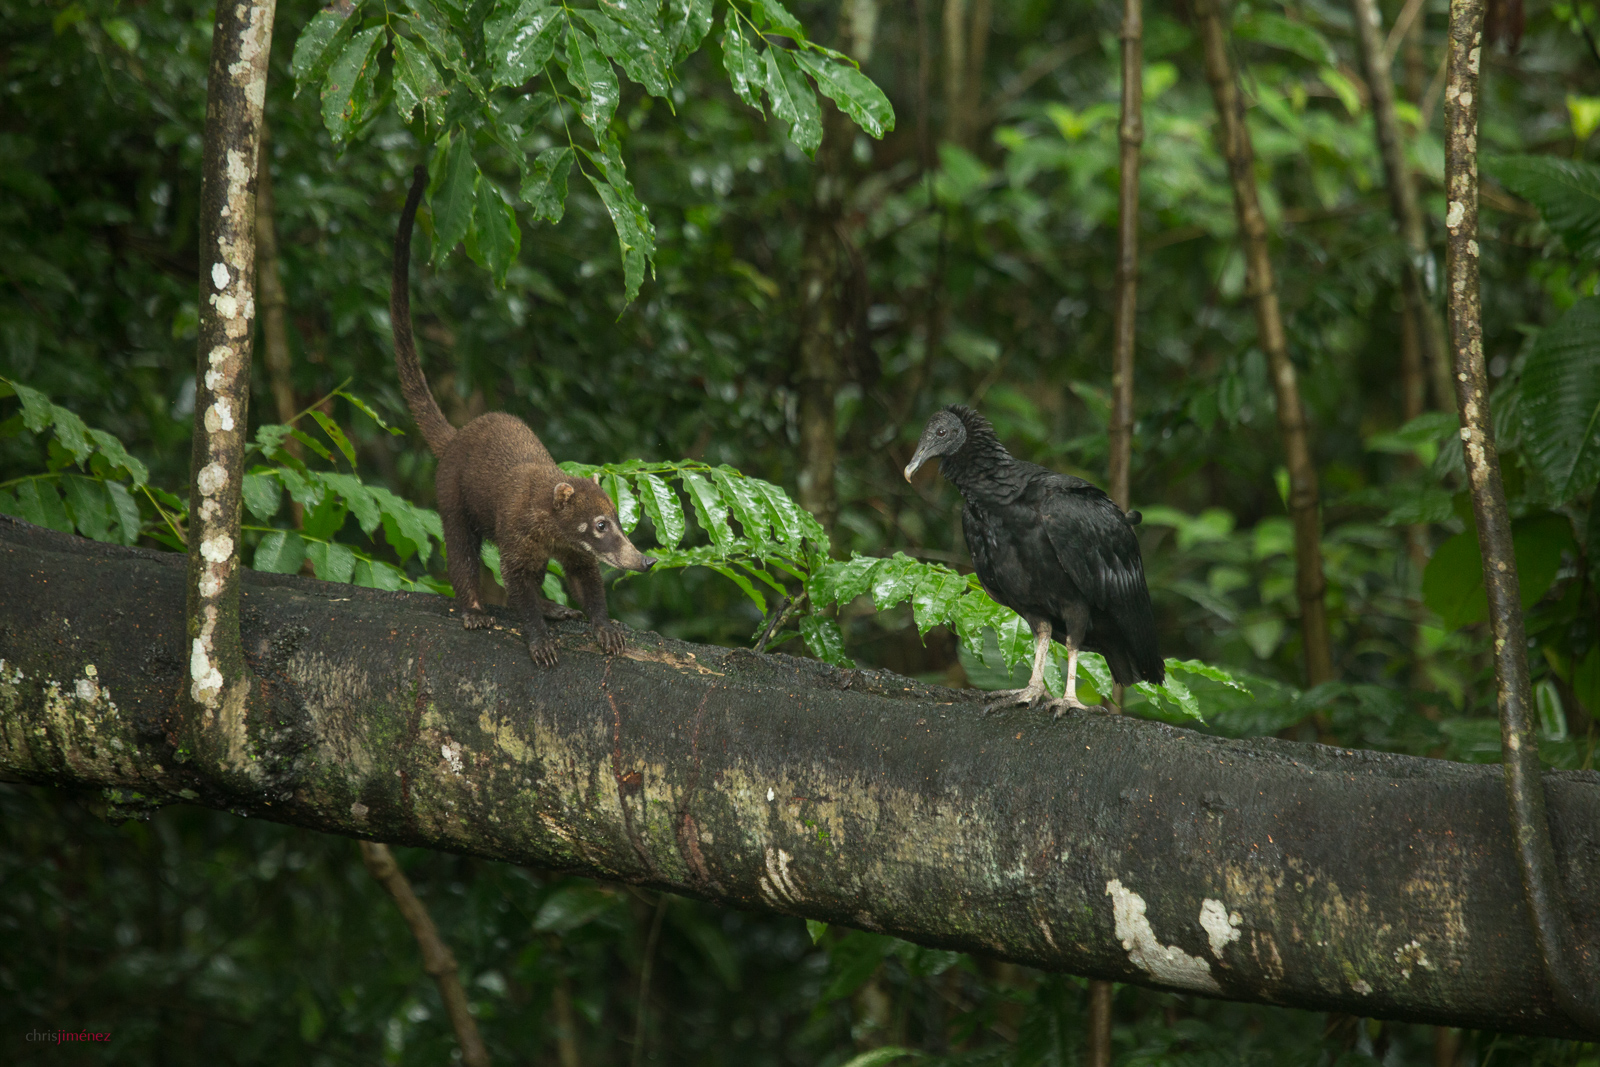 White-nosed coati and Black Vulture meet in a branch in the rainforest of Costa Rica